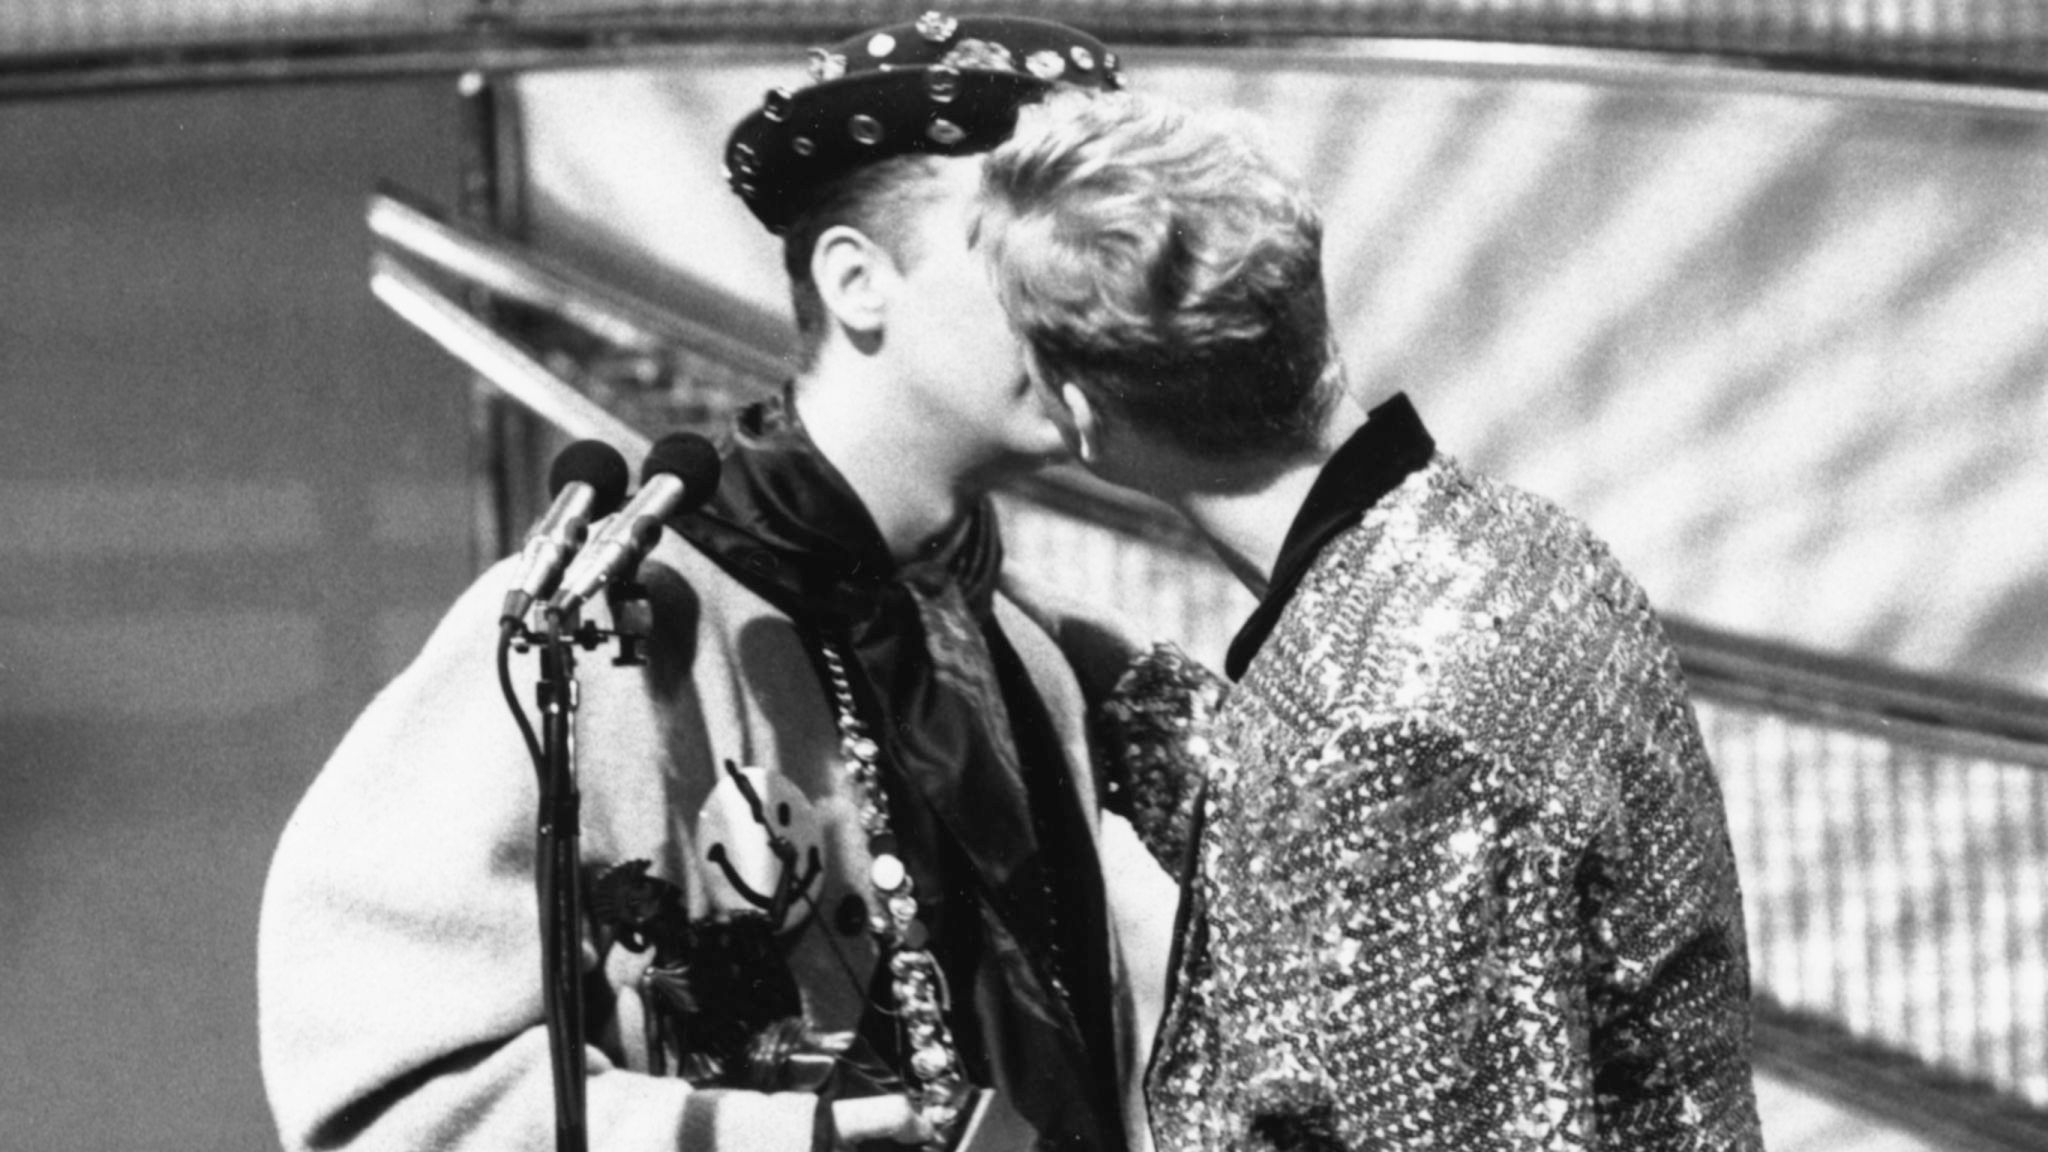 Singer Boy George, of the band Culture Club, kissing Andy Bell, of the band 'Erasure', in 1989